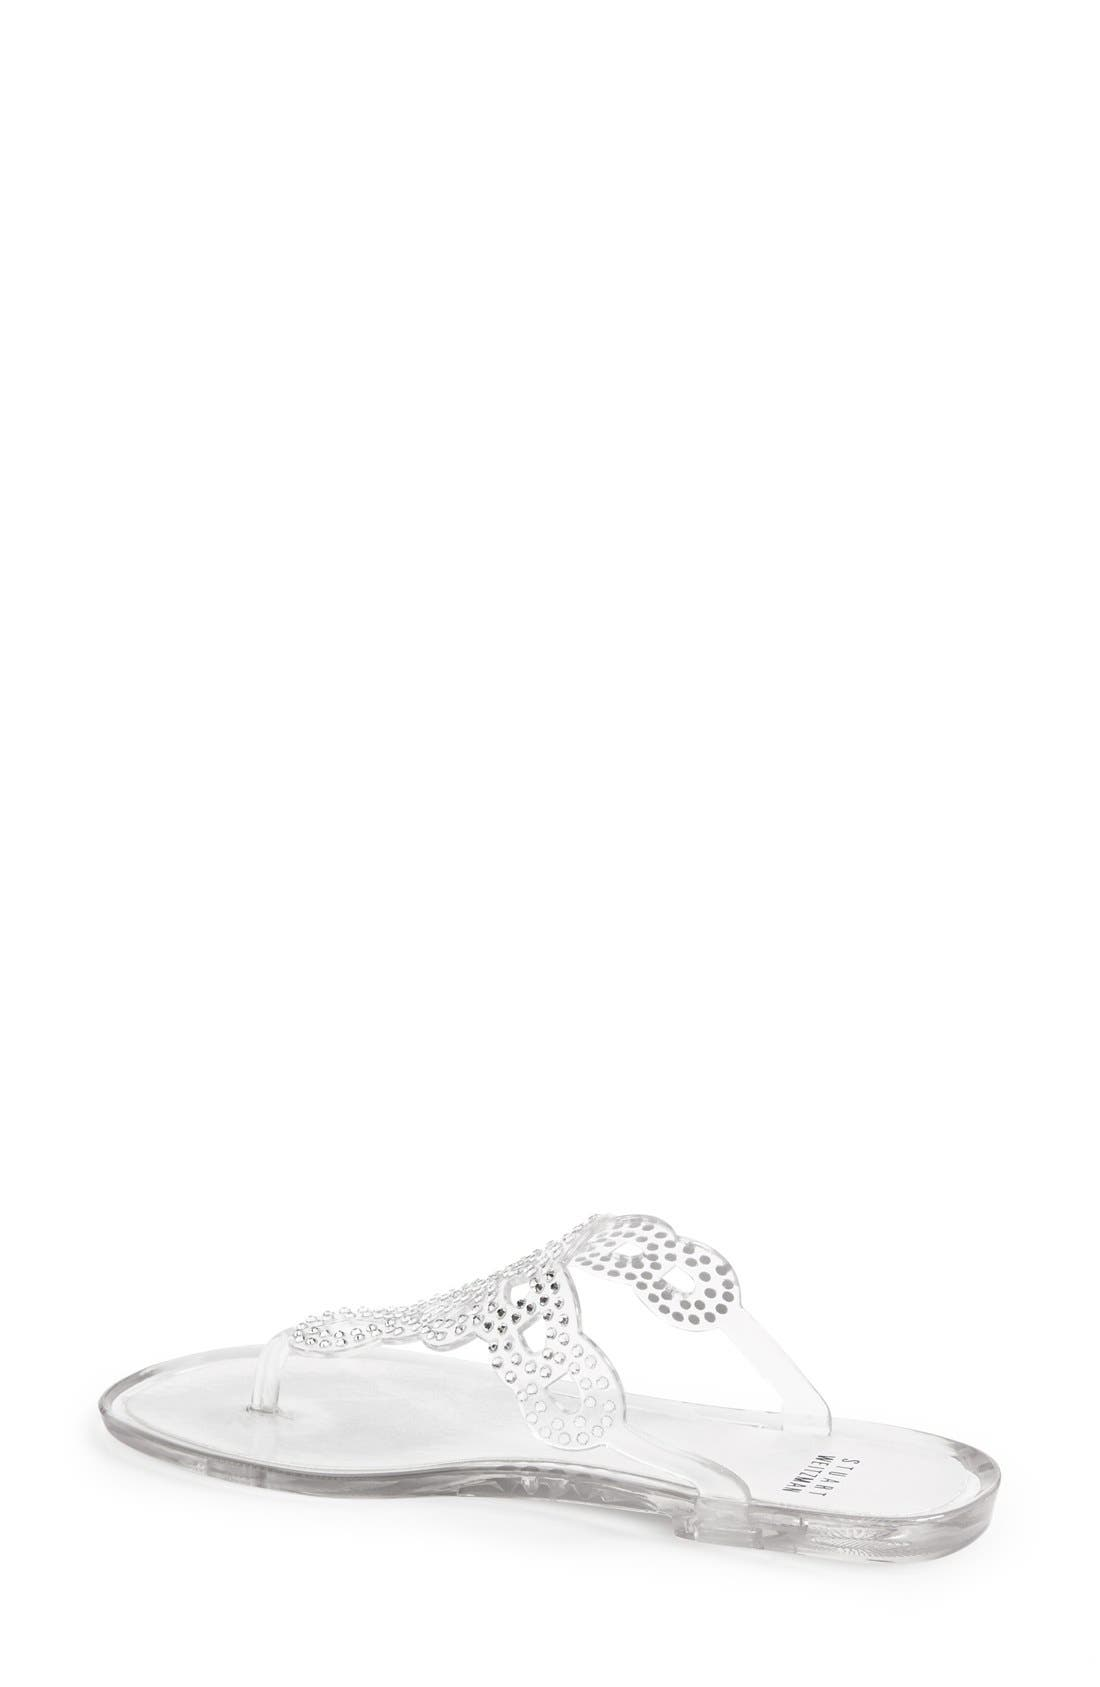 Alternate Image 2  - Stuart Weitzman 'Mermaid' Crystal Embellished Jelly Sandal (Women)